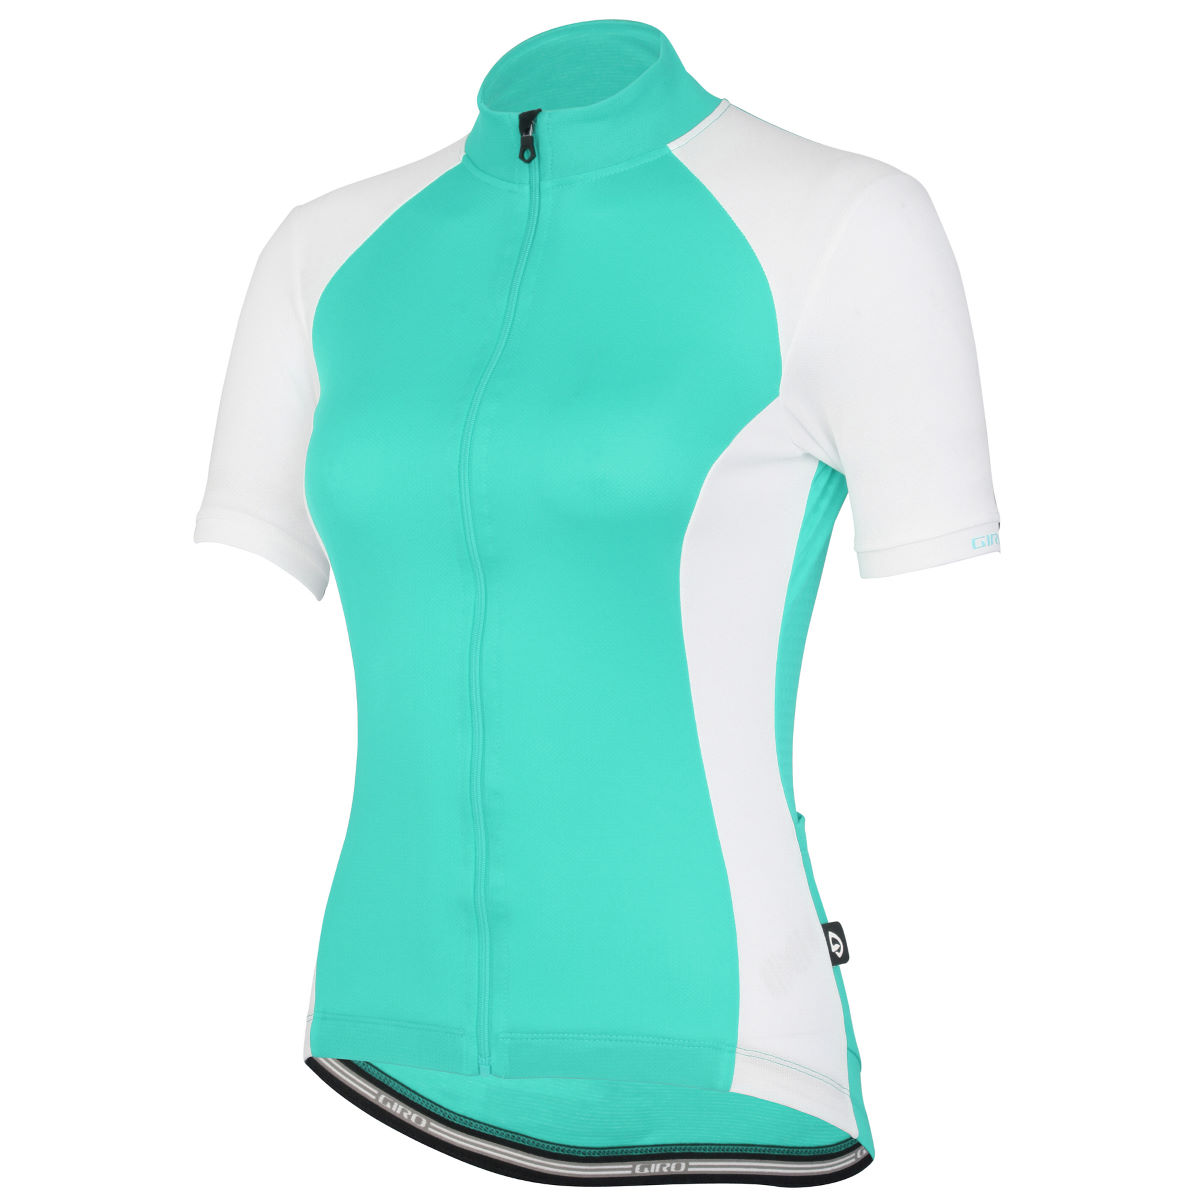 Maillot Femme Giro Chrono Sport - S Vert Maillots vélo à manches courtes